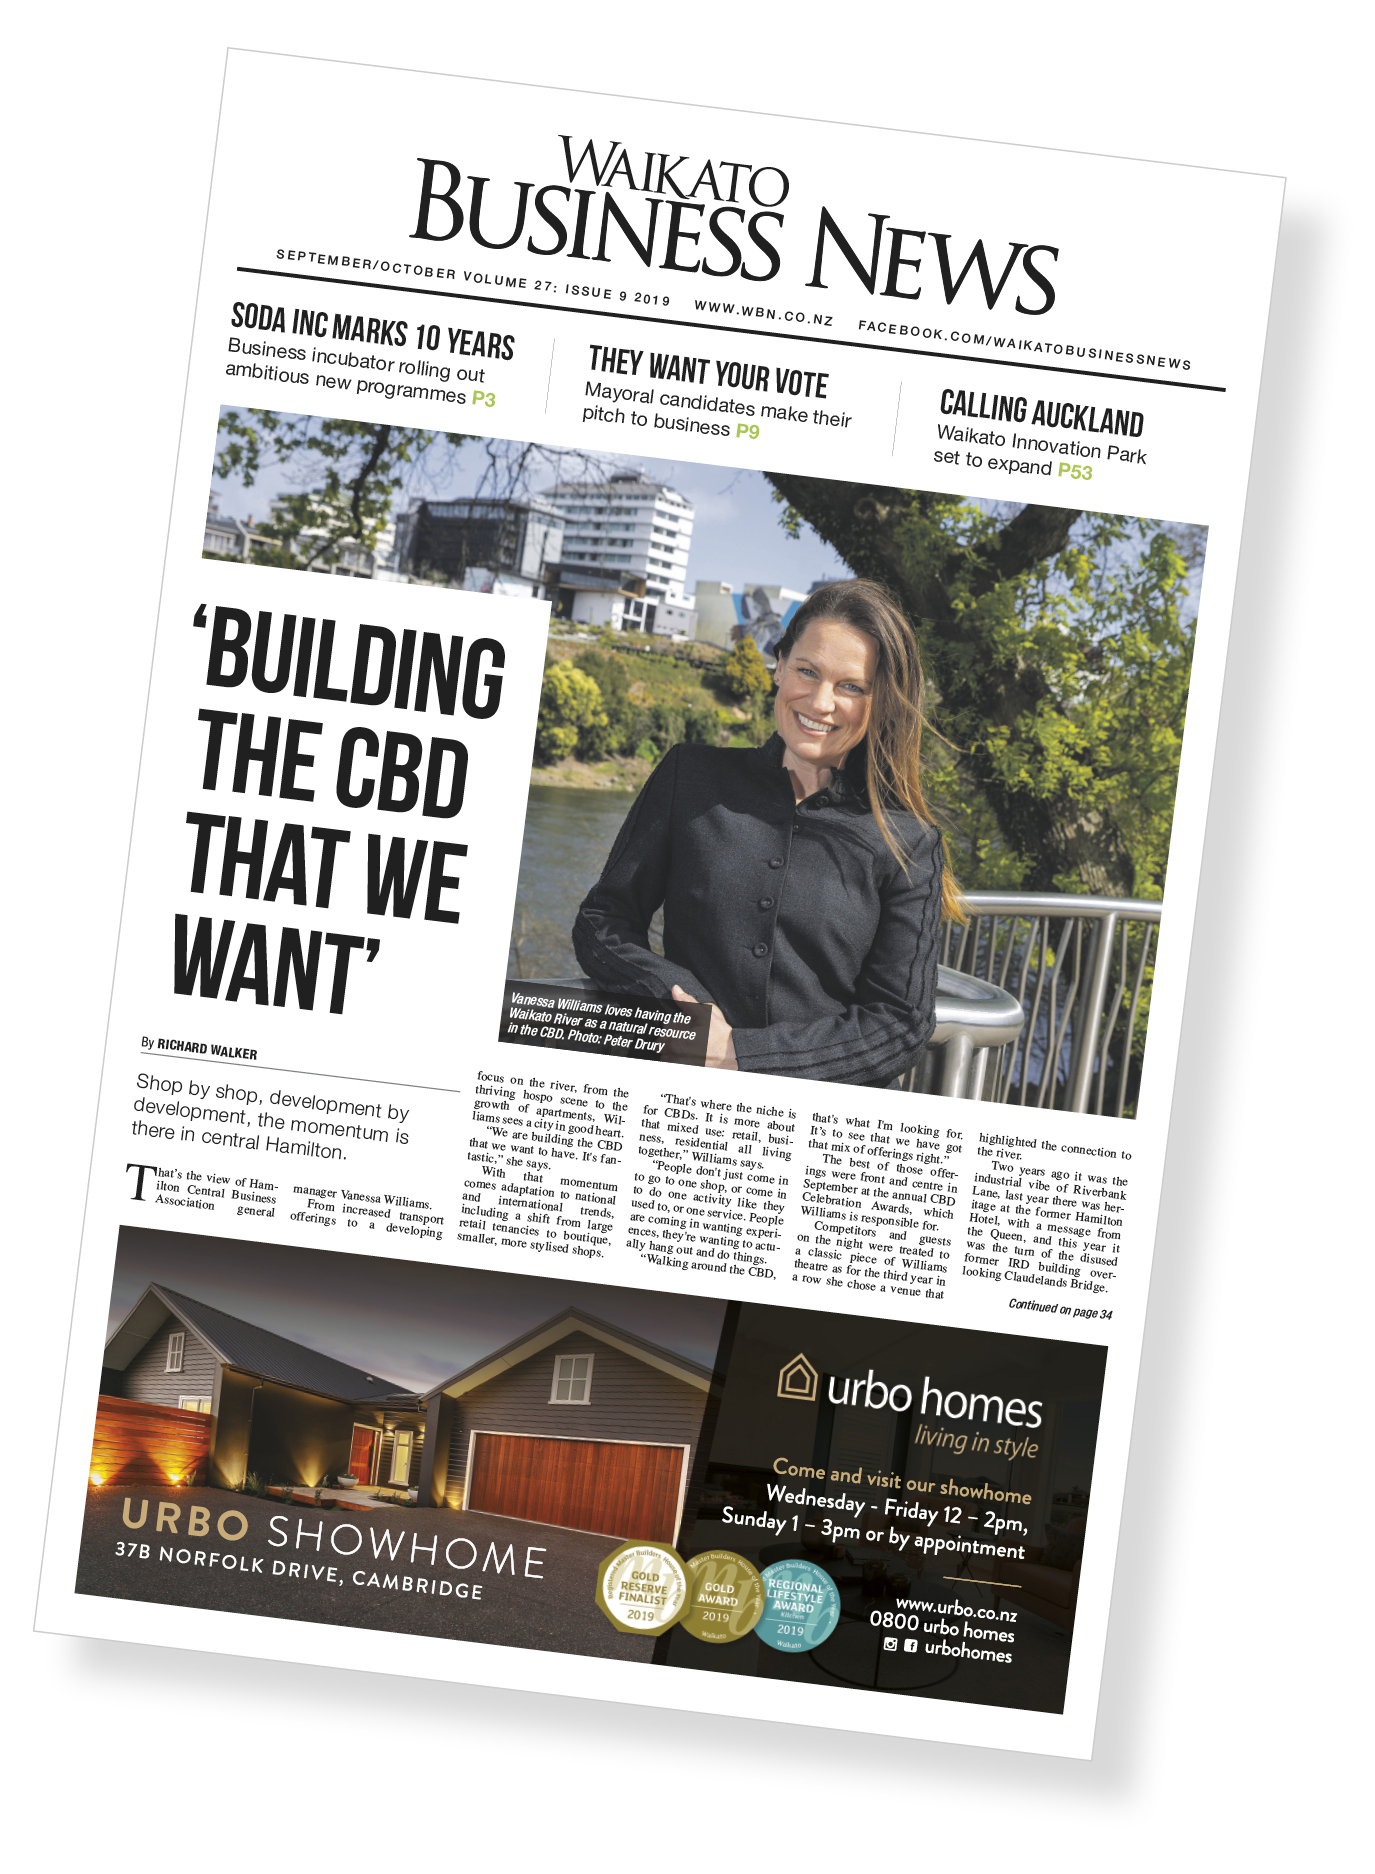 Waikato Business News September 2019